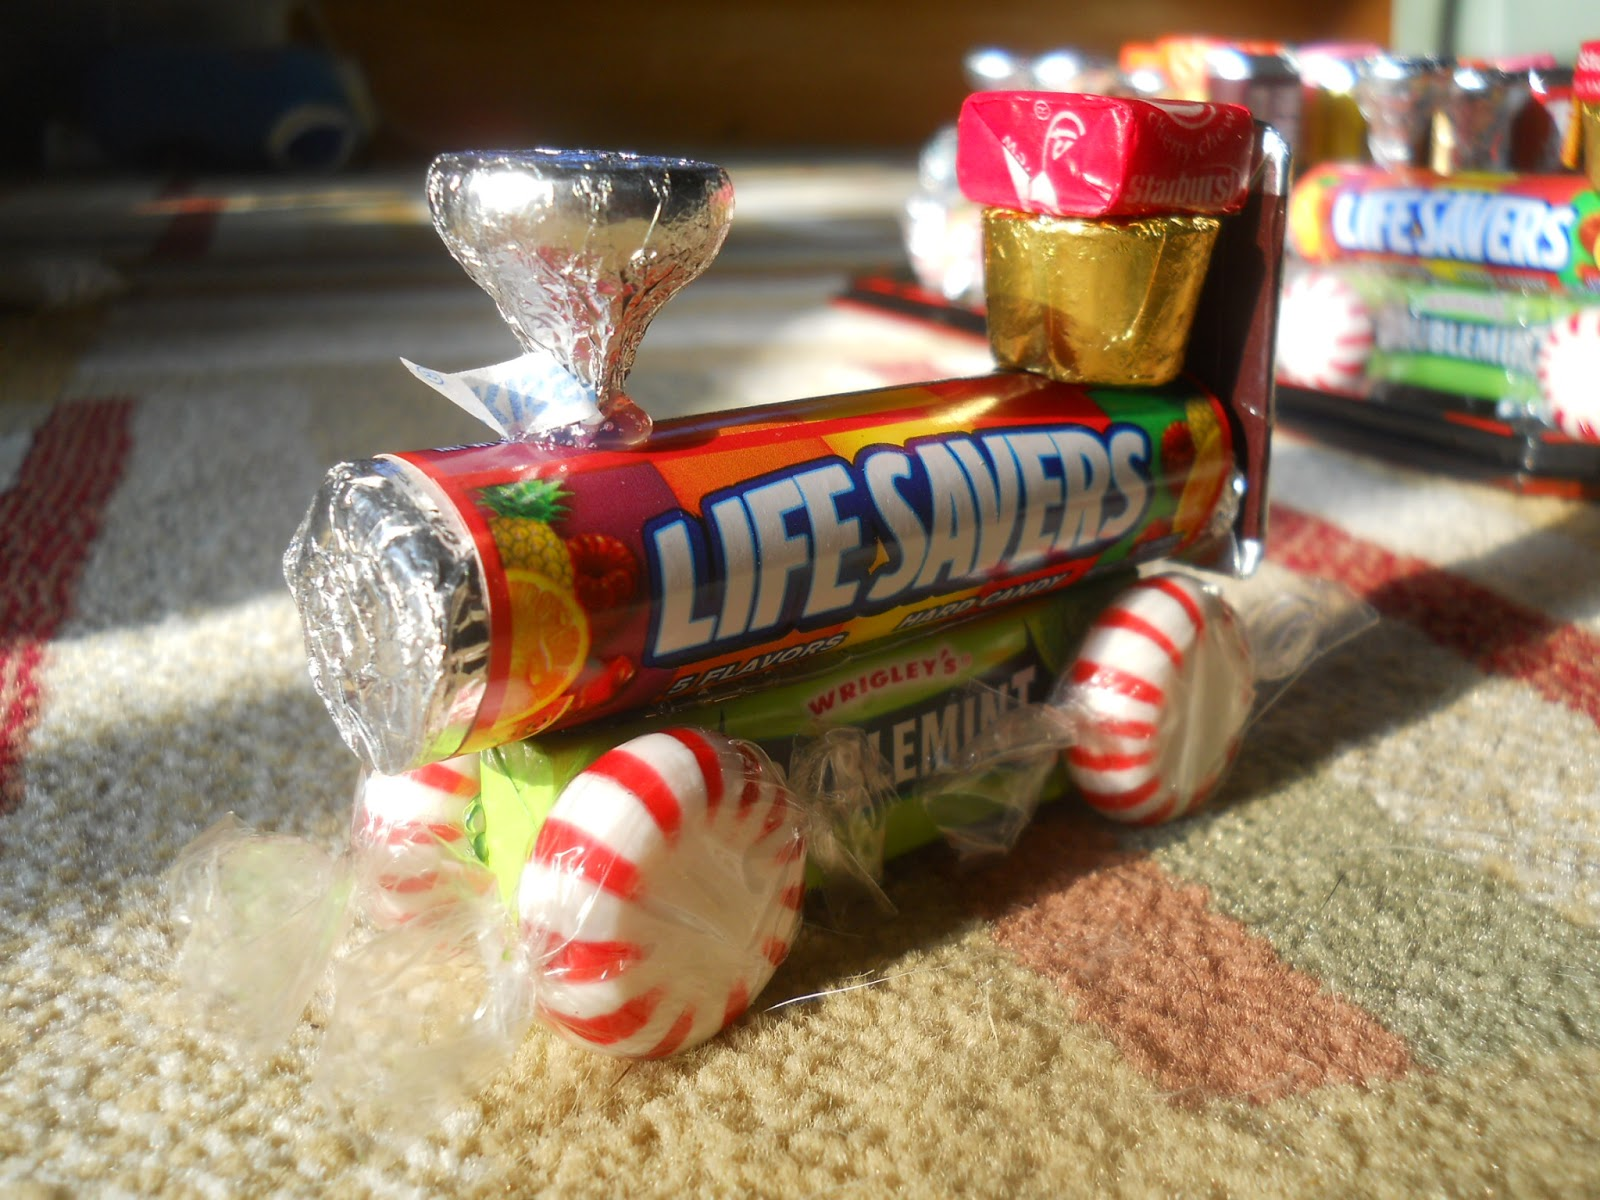 Christmas Candy Train.Japan Home Sweet Home Candy Trains